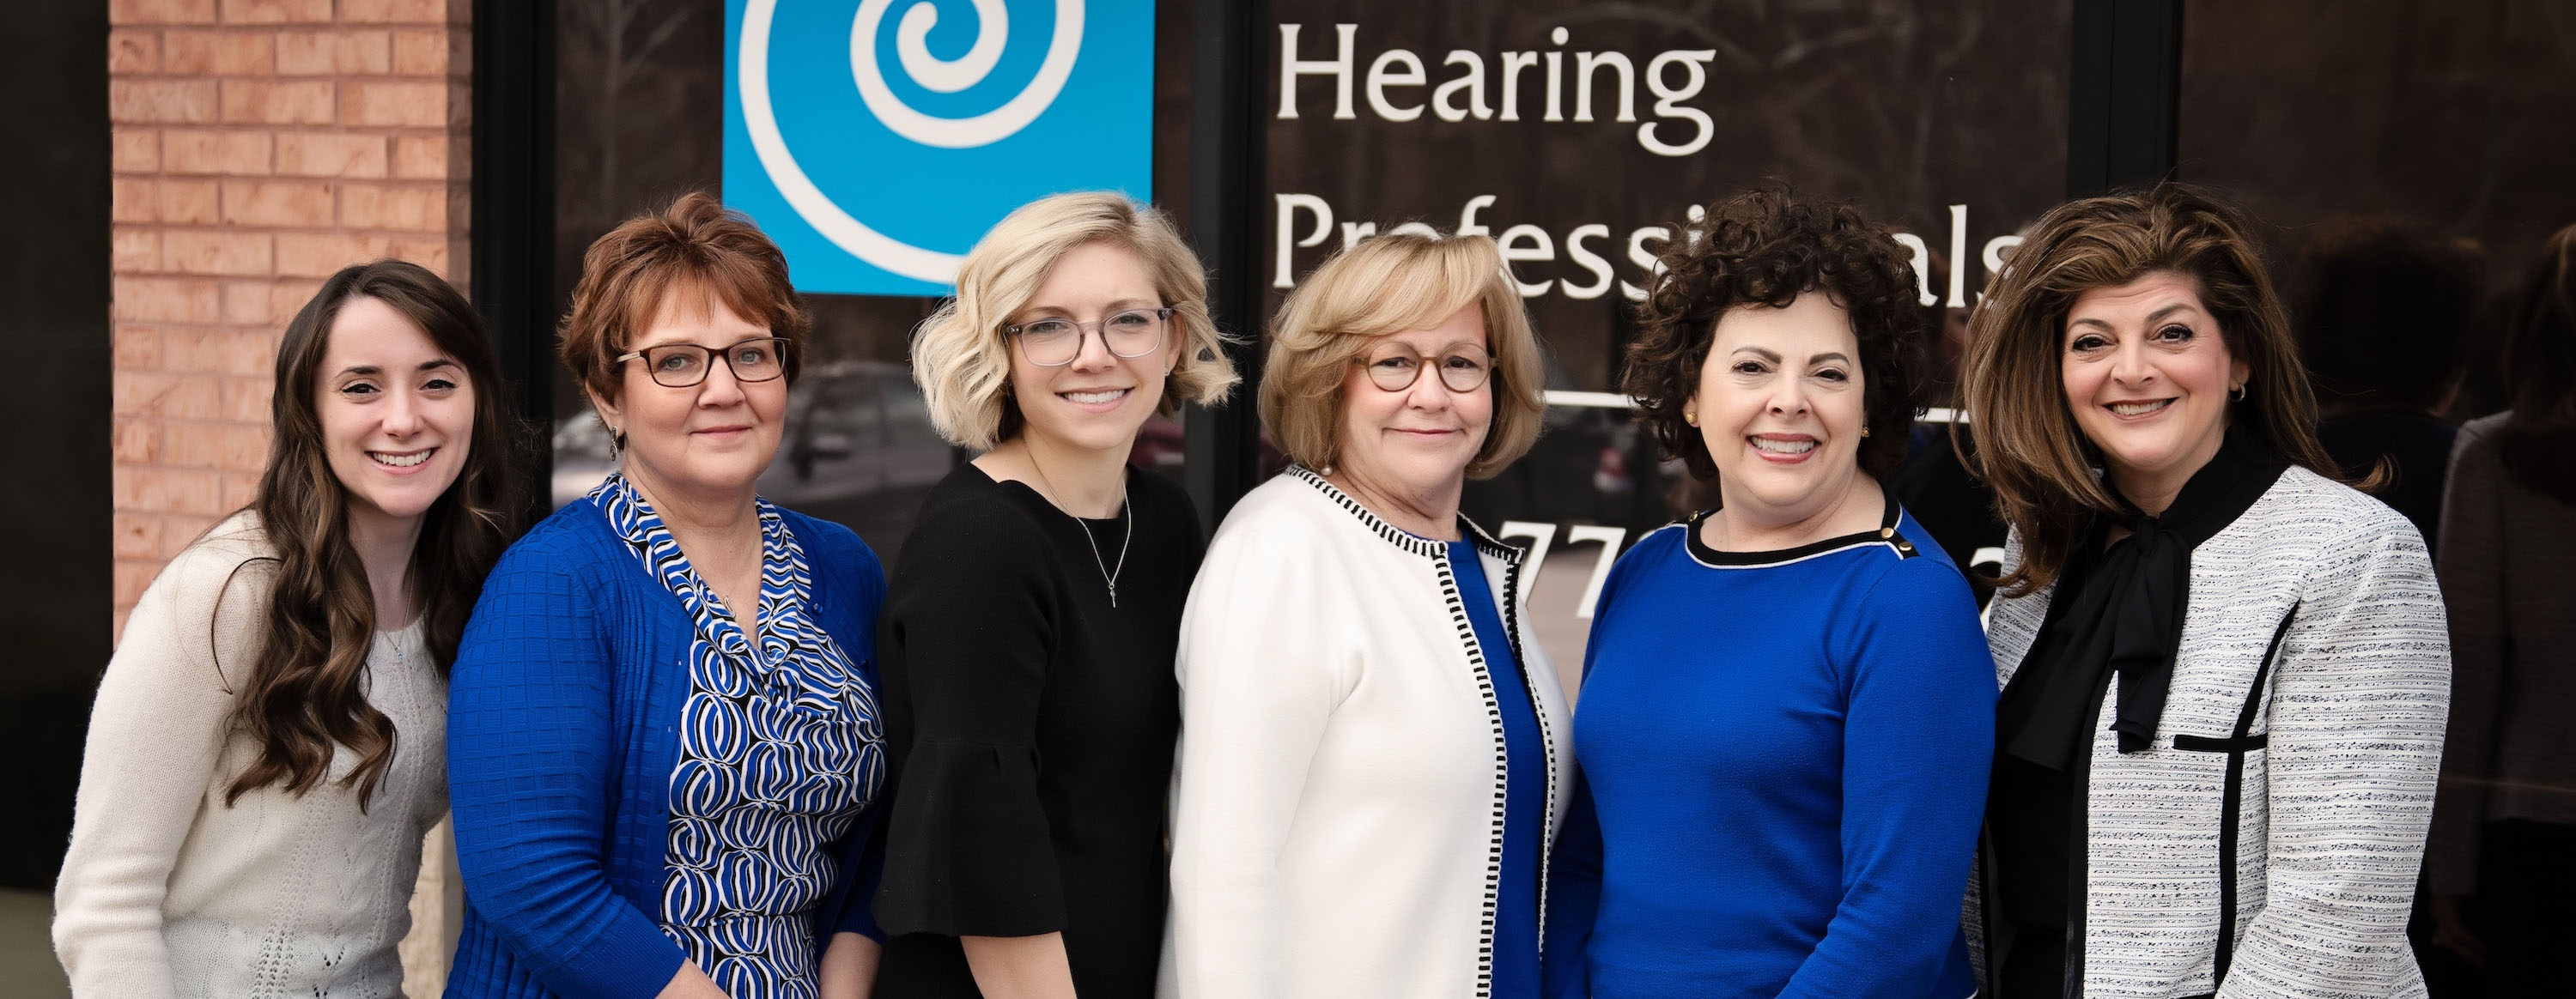 Associated Hearing Professionals Team Photo